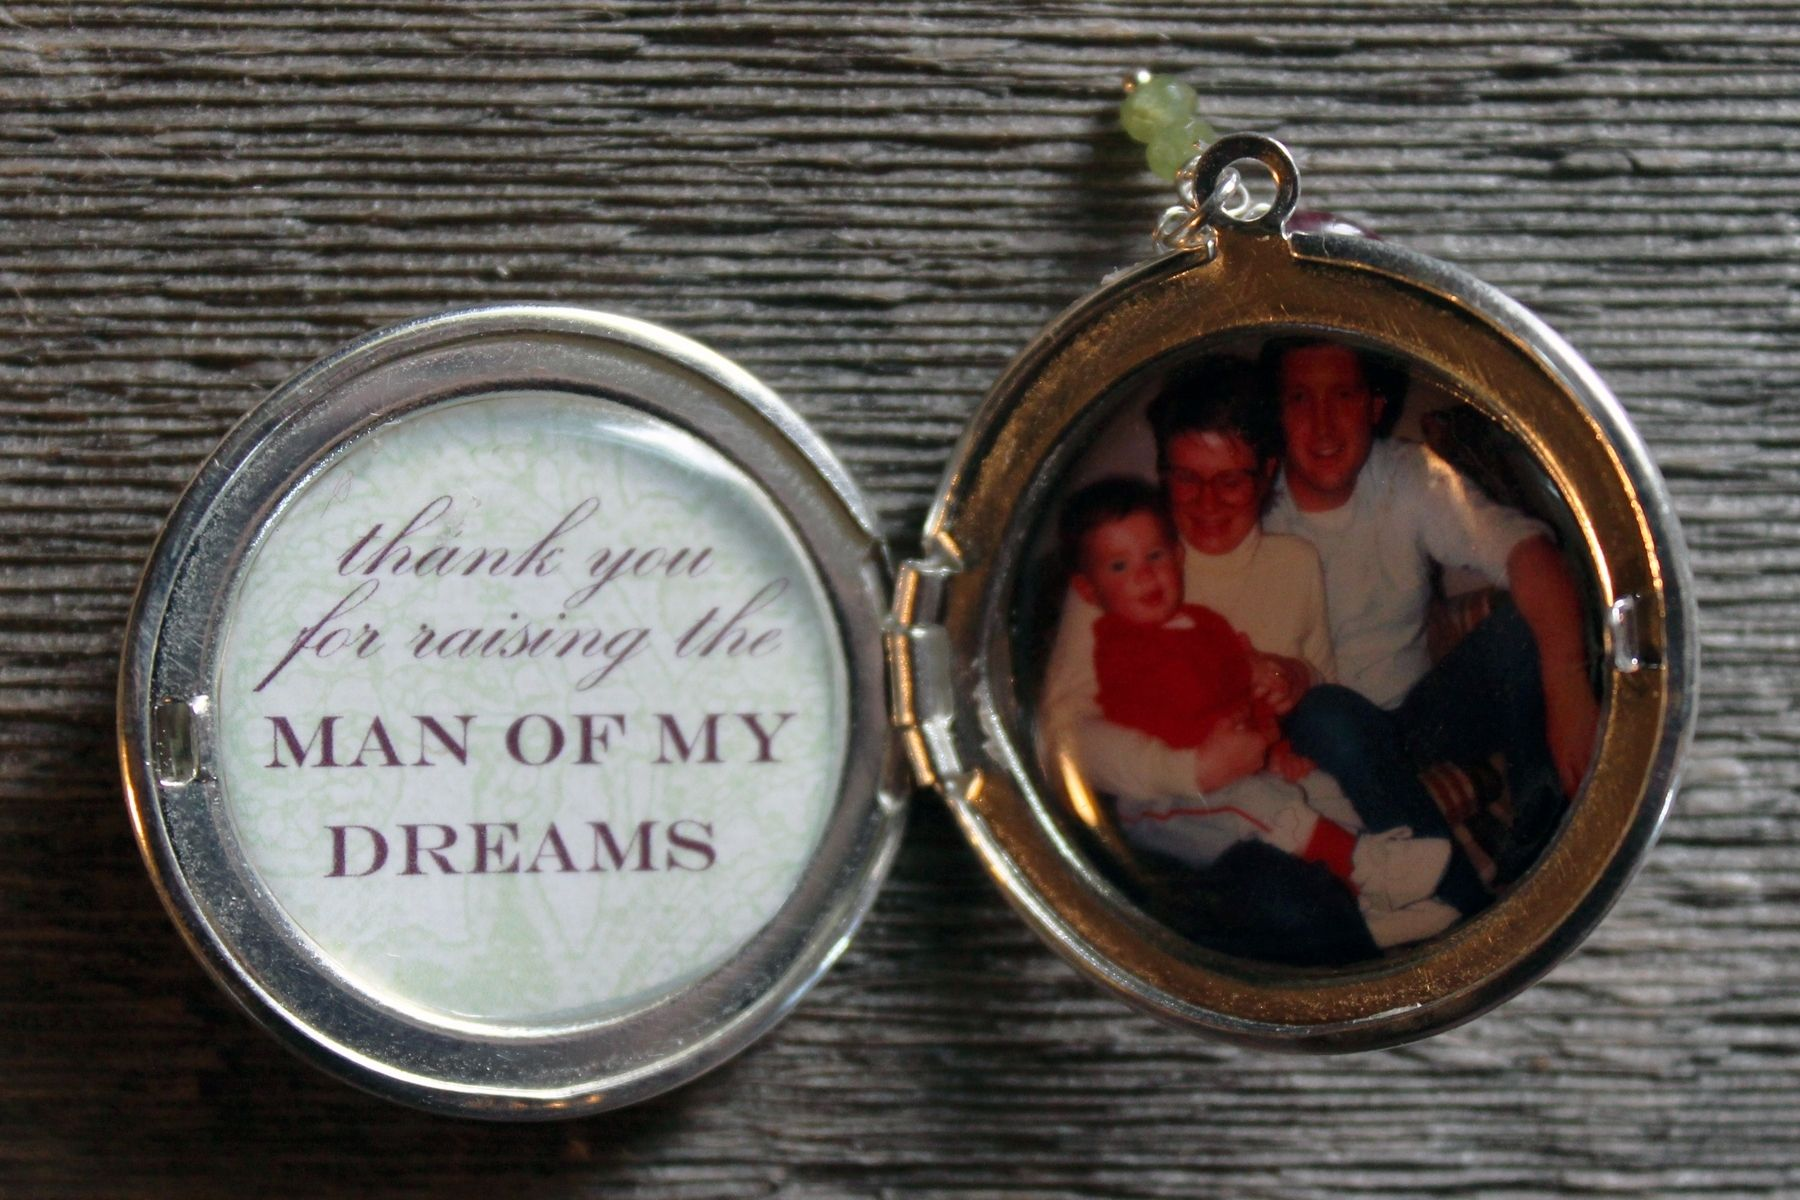 laine gifts premium personalized thomas jewelry shop custom lockets collection memento